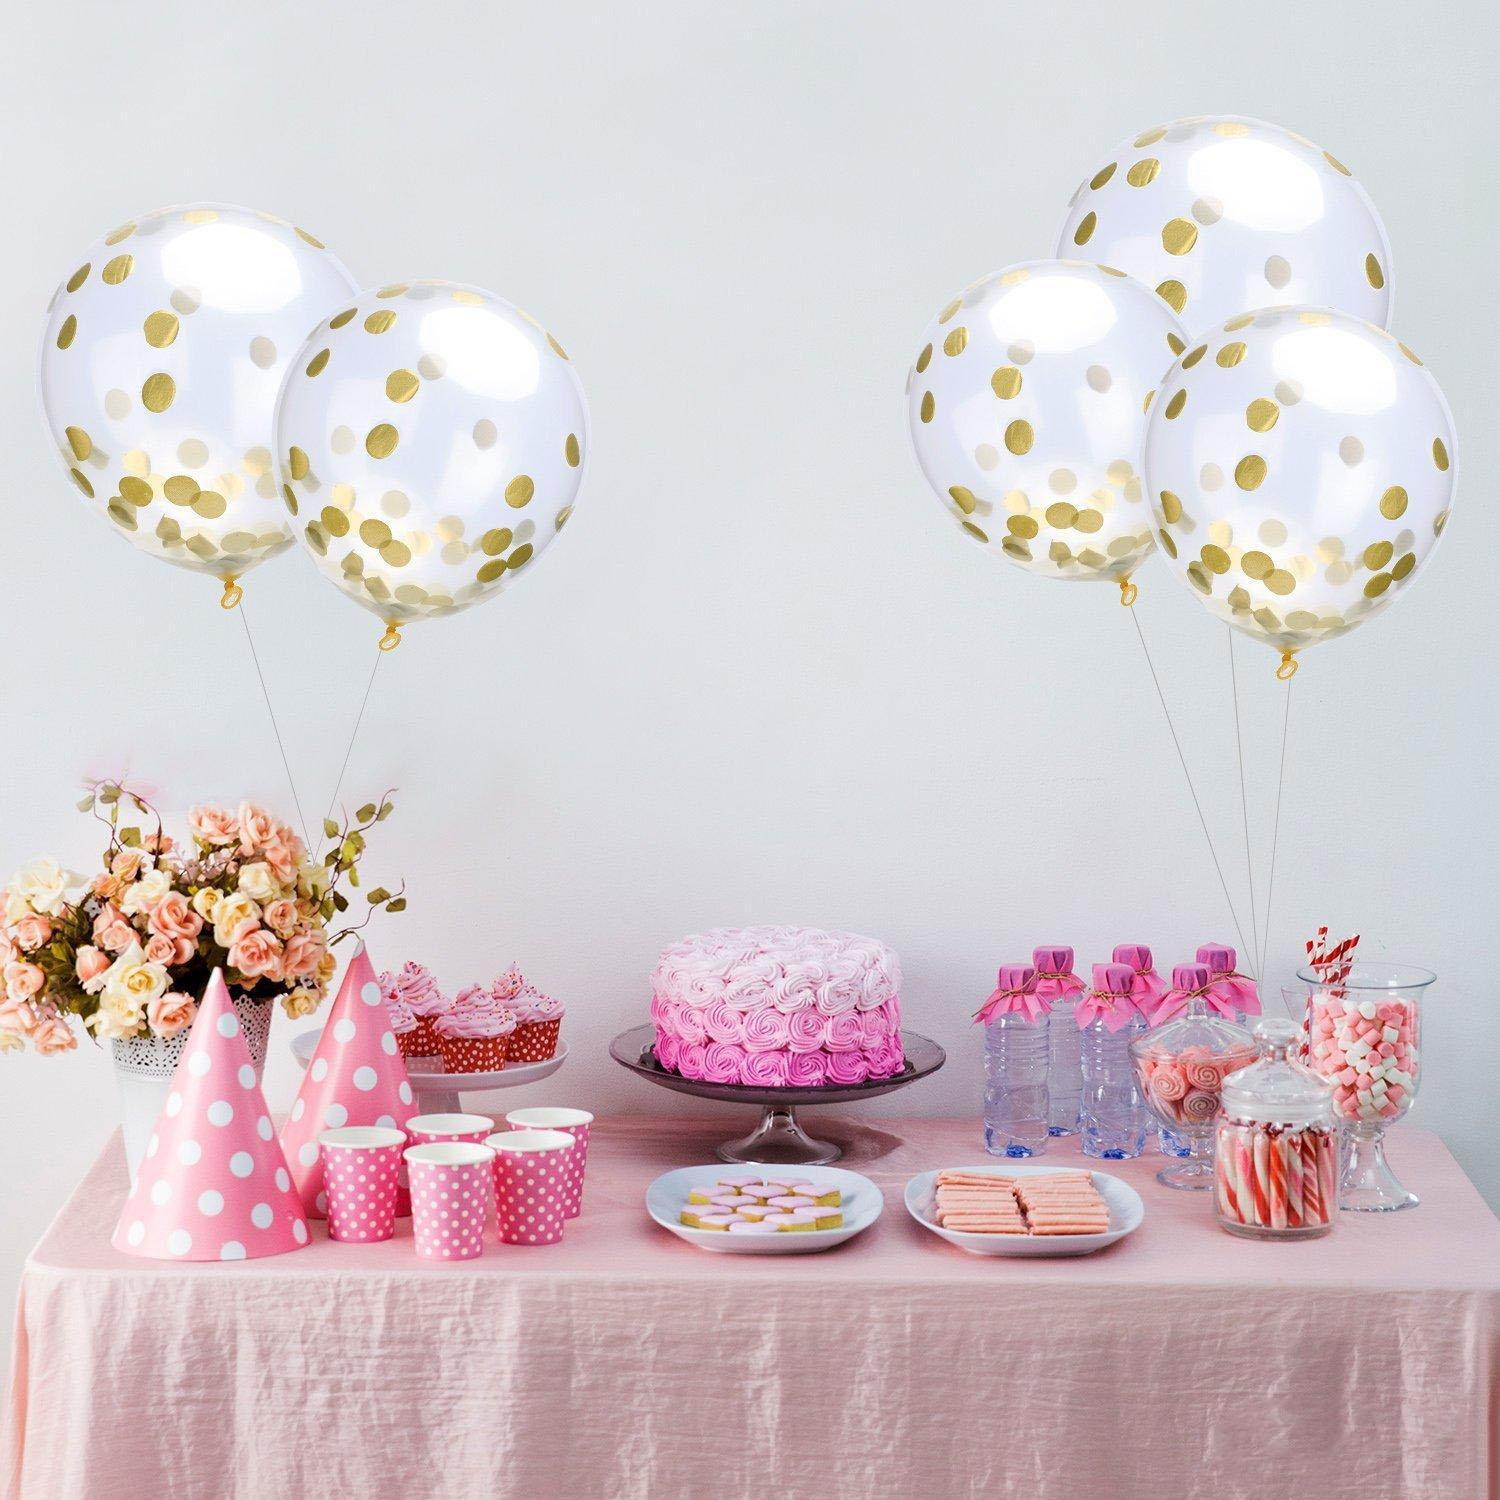 12-inch transparent gold sequins confetti balloon 2019 New Year's Party balloons wedding room decoration balloon wholesale